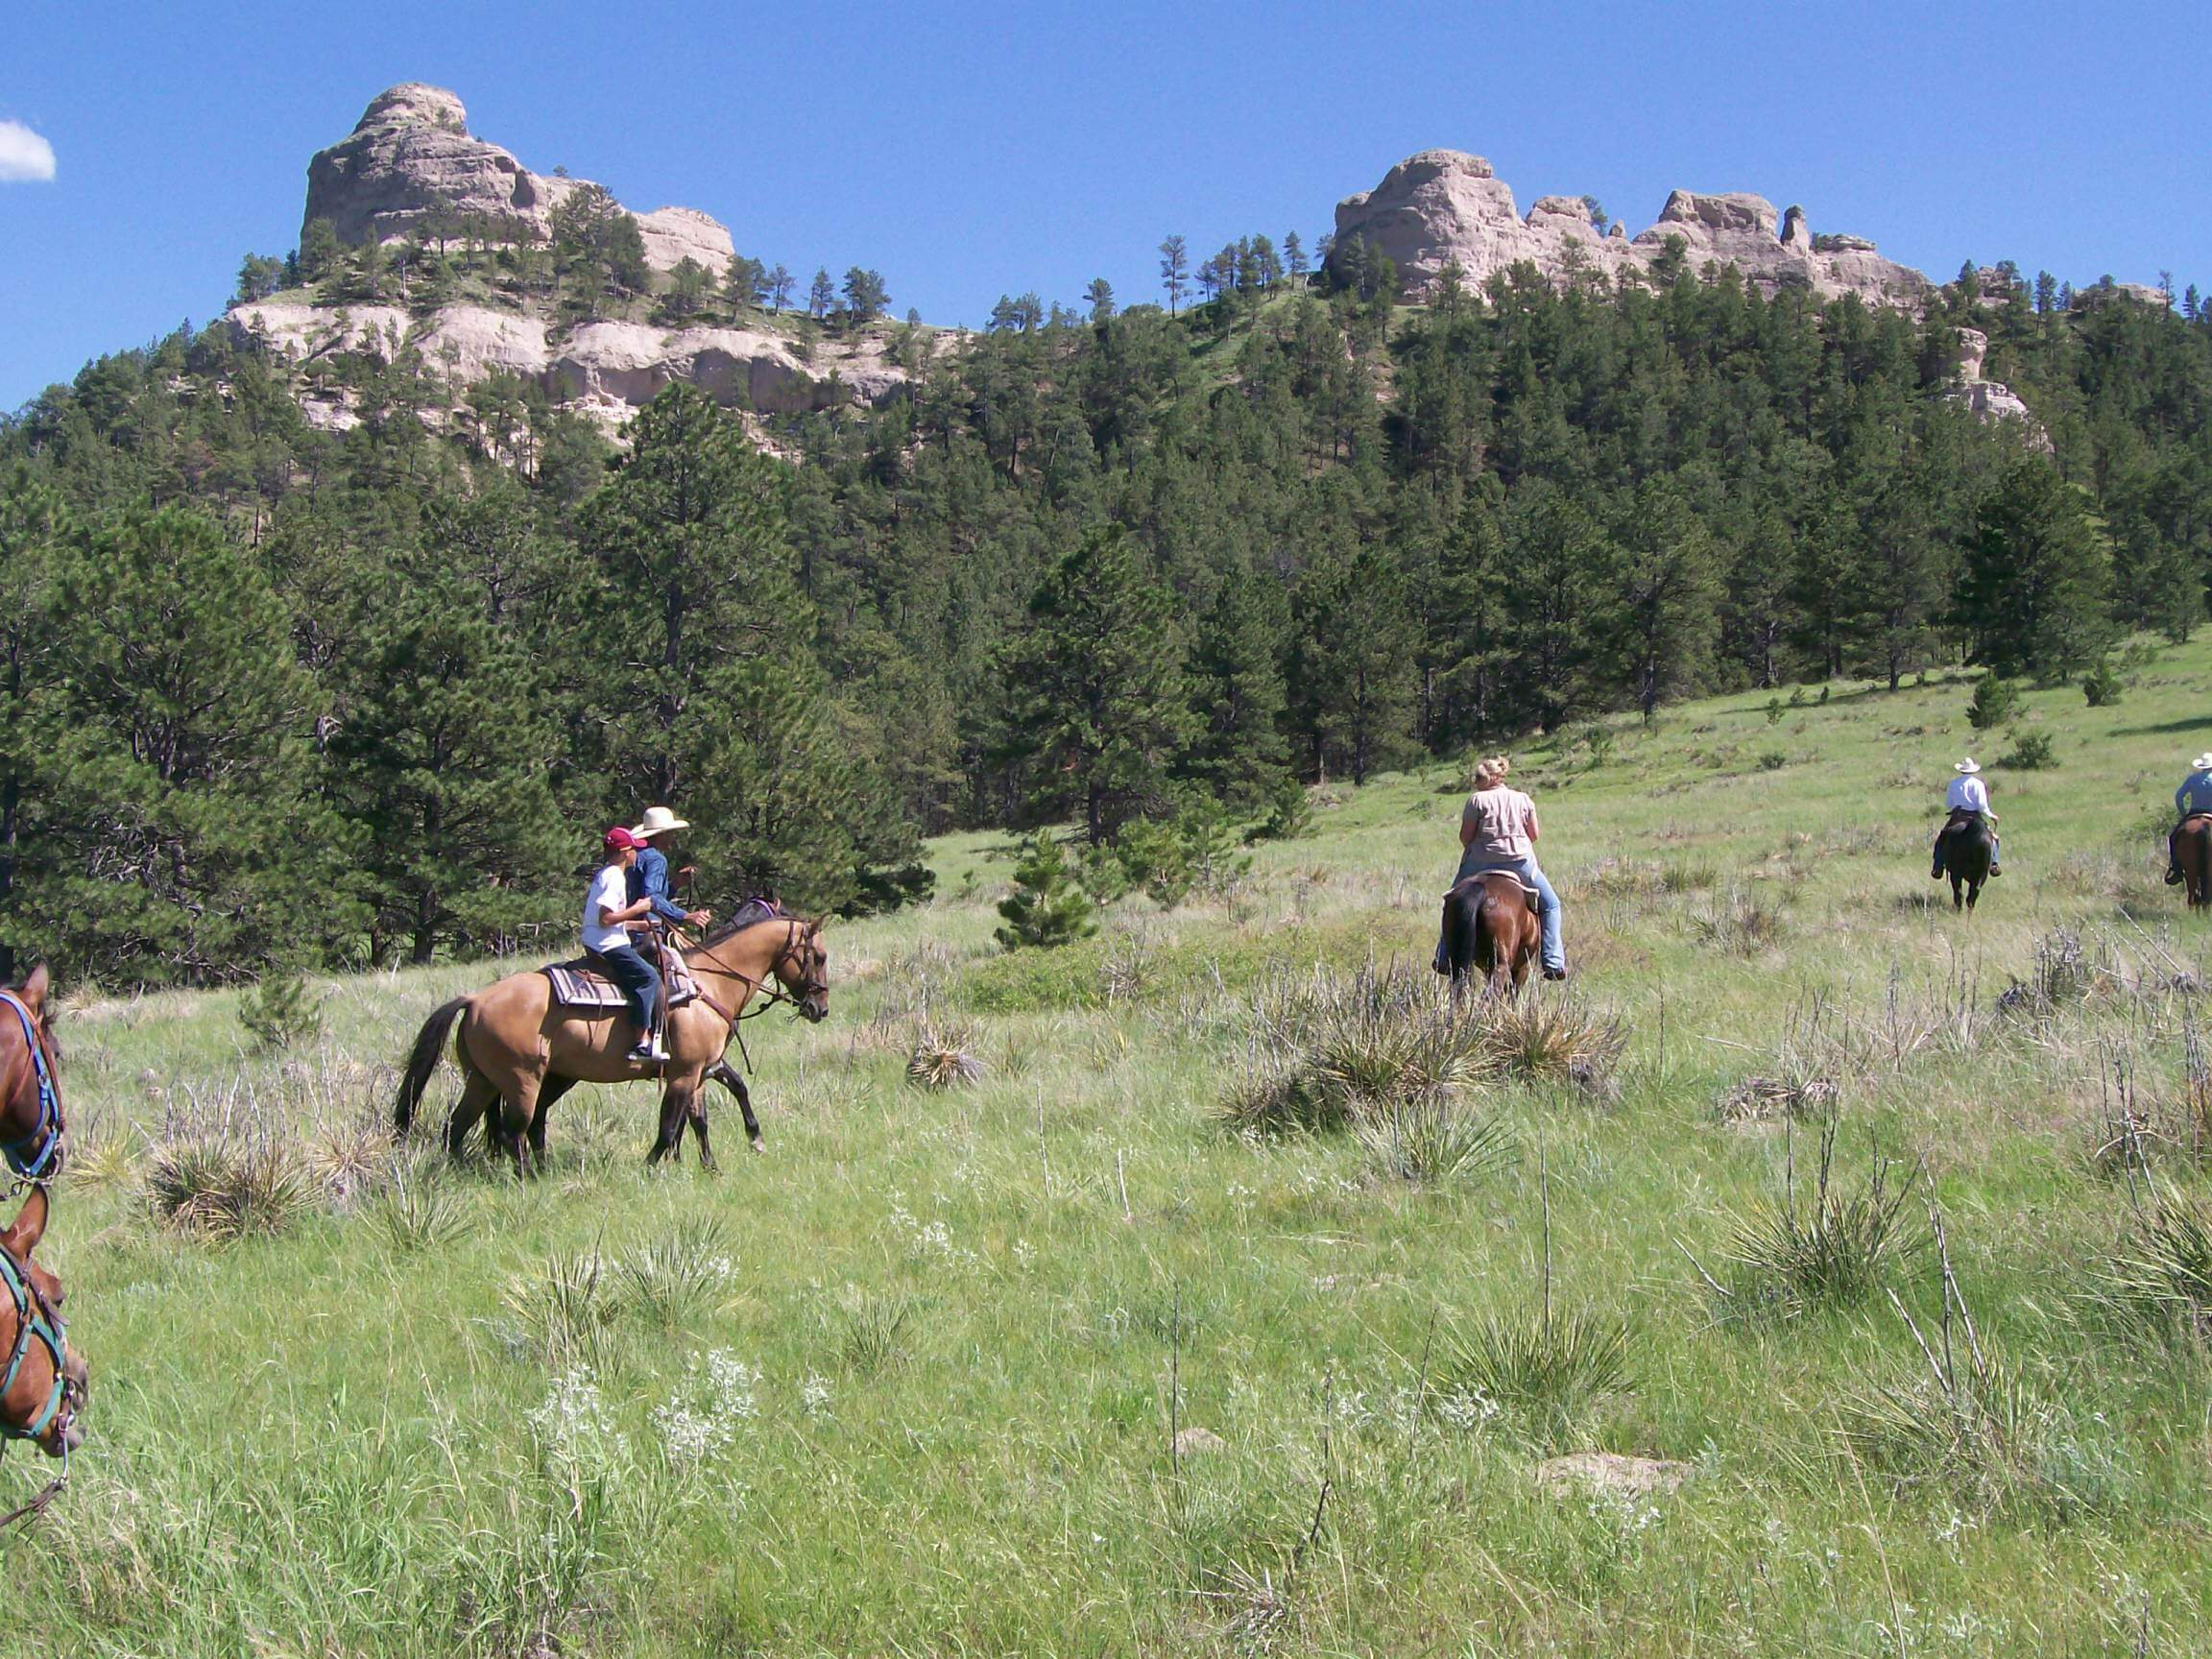 Horseback riding along the Ponderosa Pine Ridge. Crown butte makes an impressive backdrop for the riders.